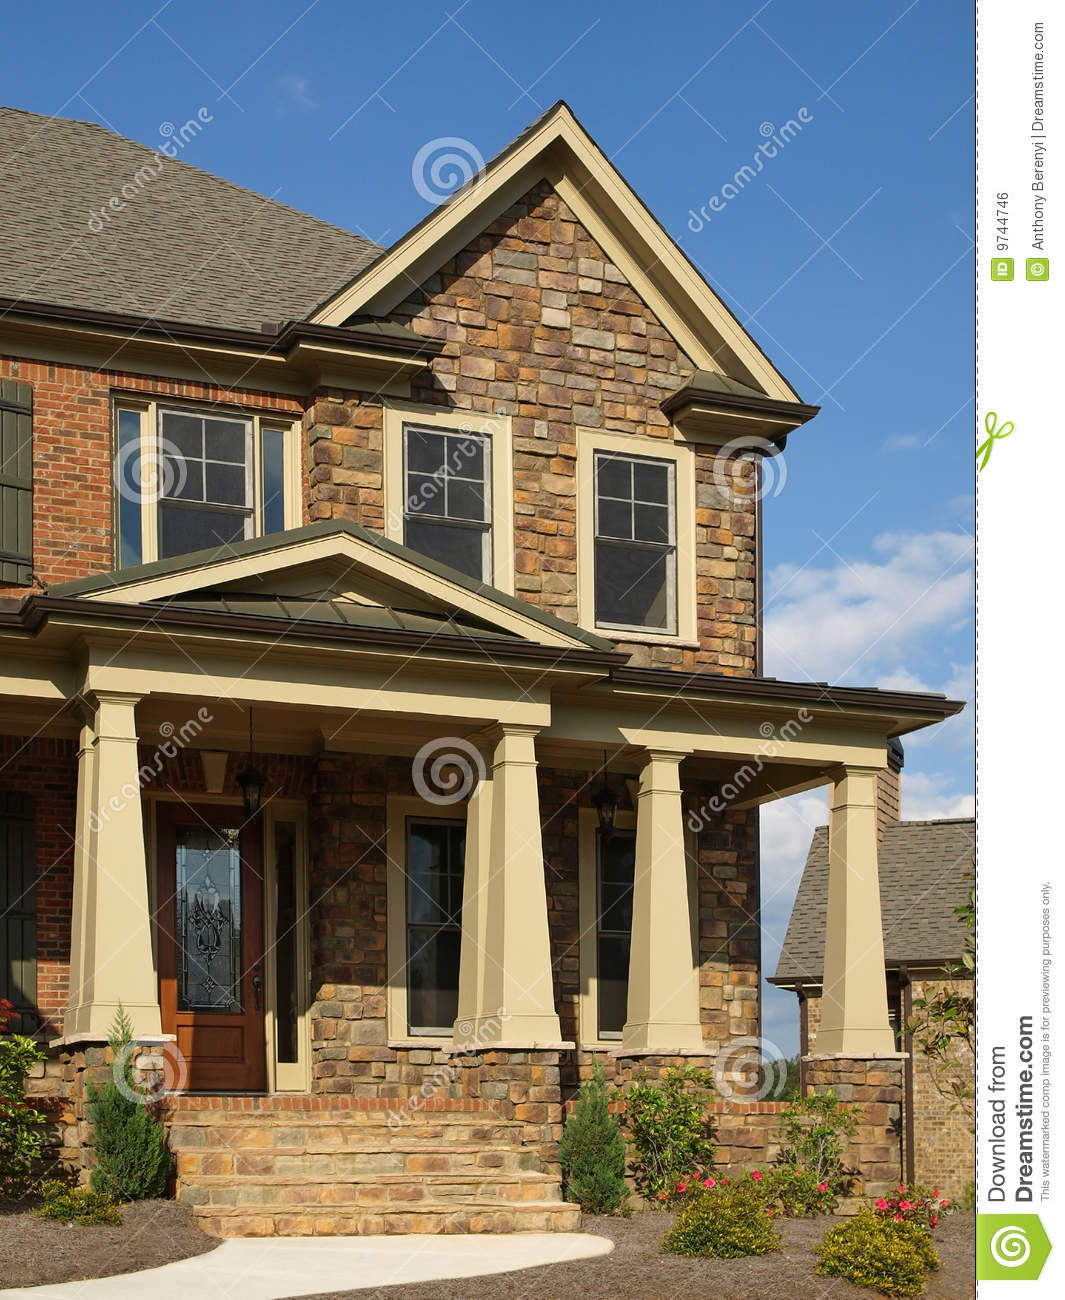 Luxury model home exterior column entrance stock photo for Columns for house exterior